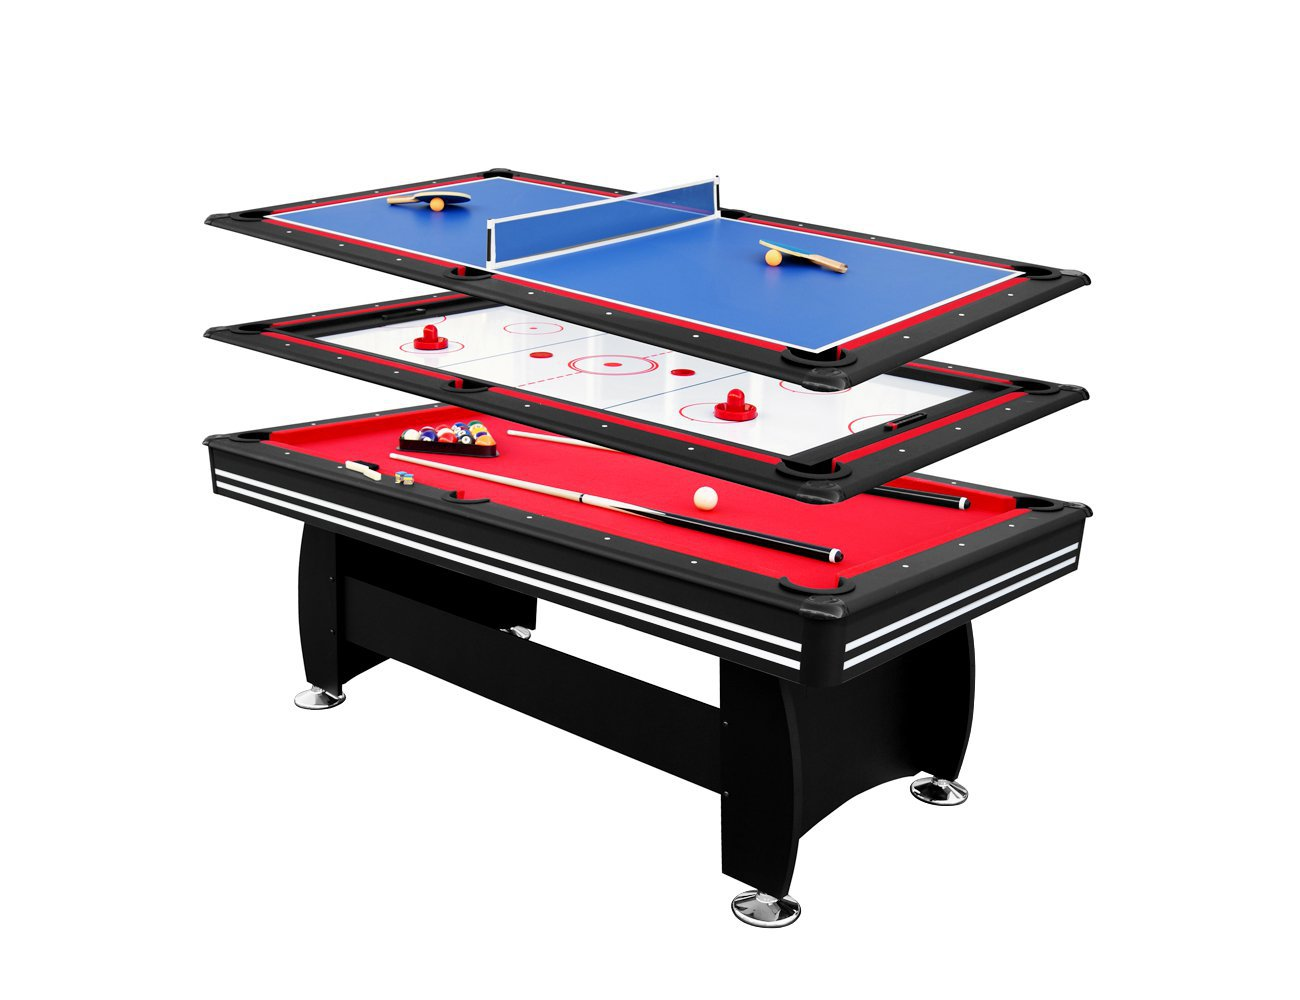 Multifunctional 3-in-1 Games Table